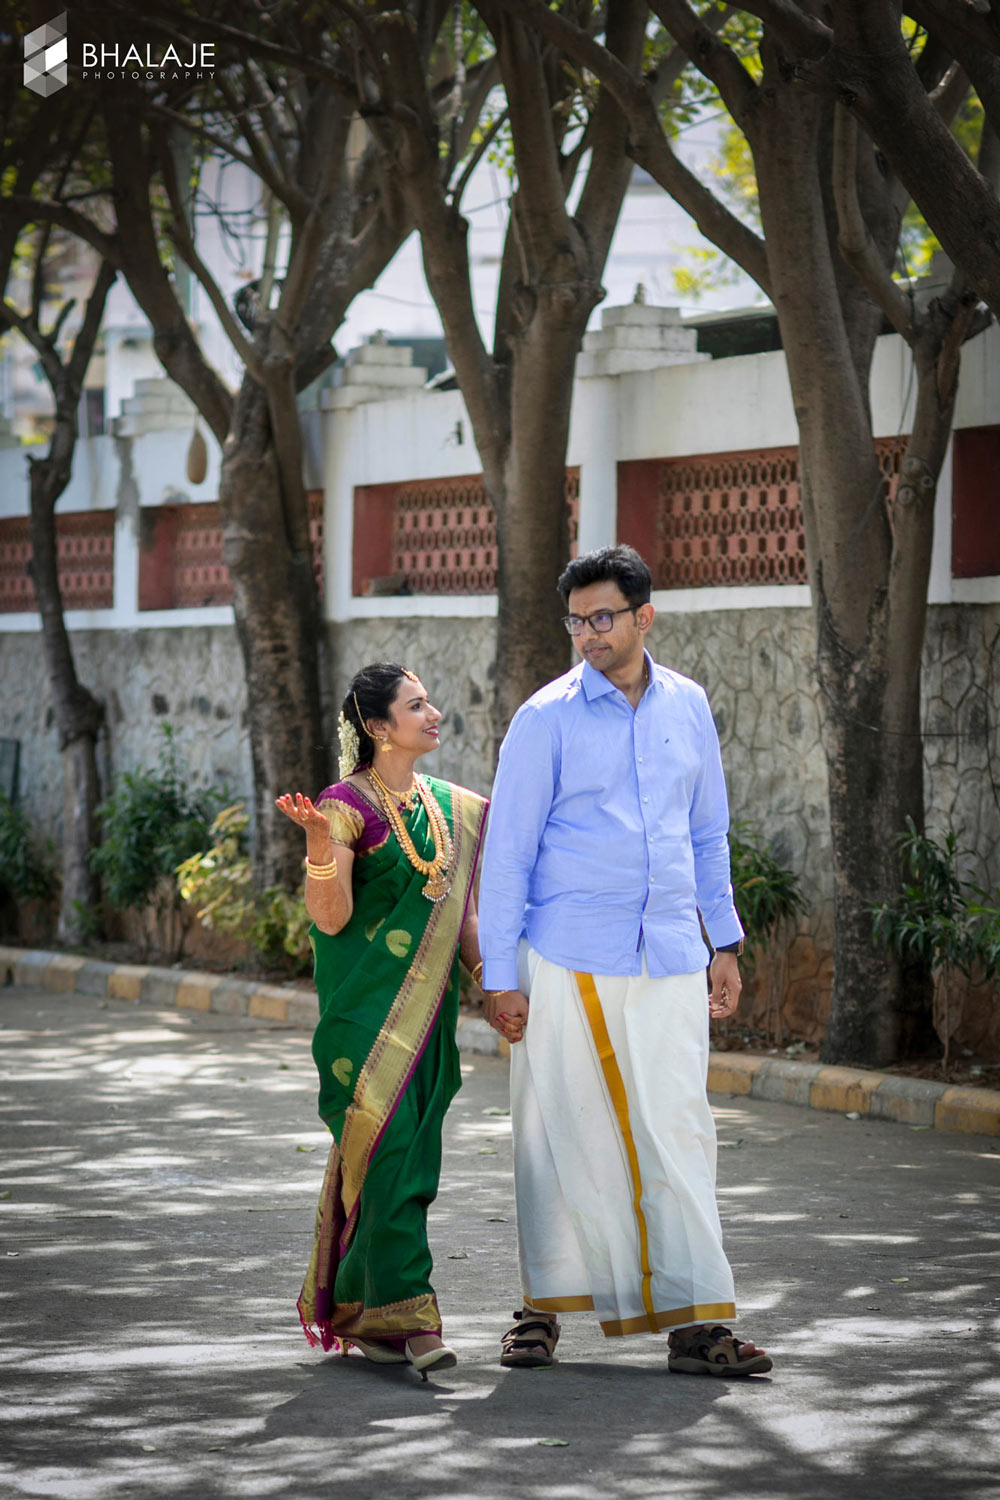 Best Professional Brahmin Wedding Photographers, South Indian Brahmin Wedding Photography, Iyengar Wedding Photography Chennai, Best Iyengar wedding photographer Chennai, Tam Bram Wedding Photography, Telugu Brahmins Wedding Photography